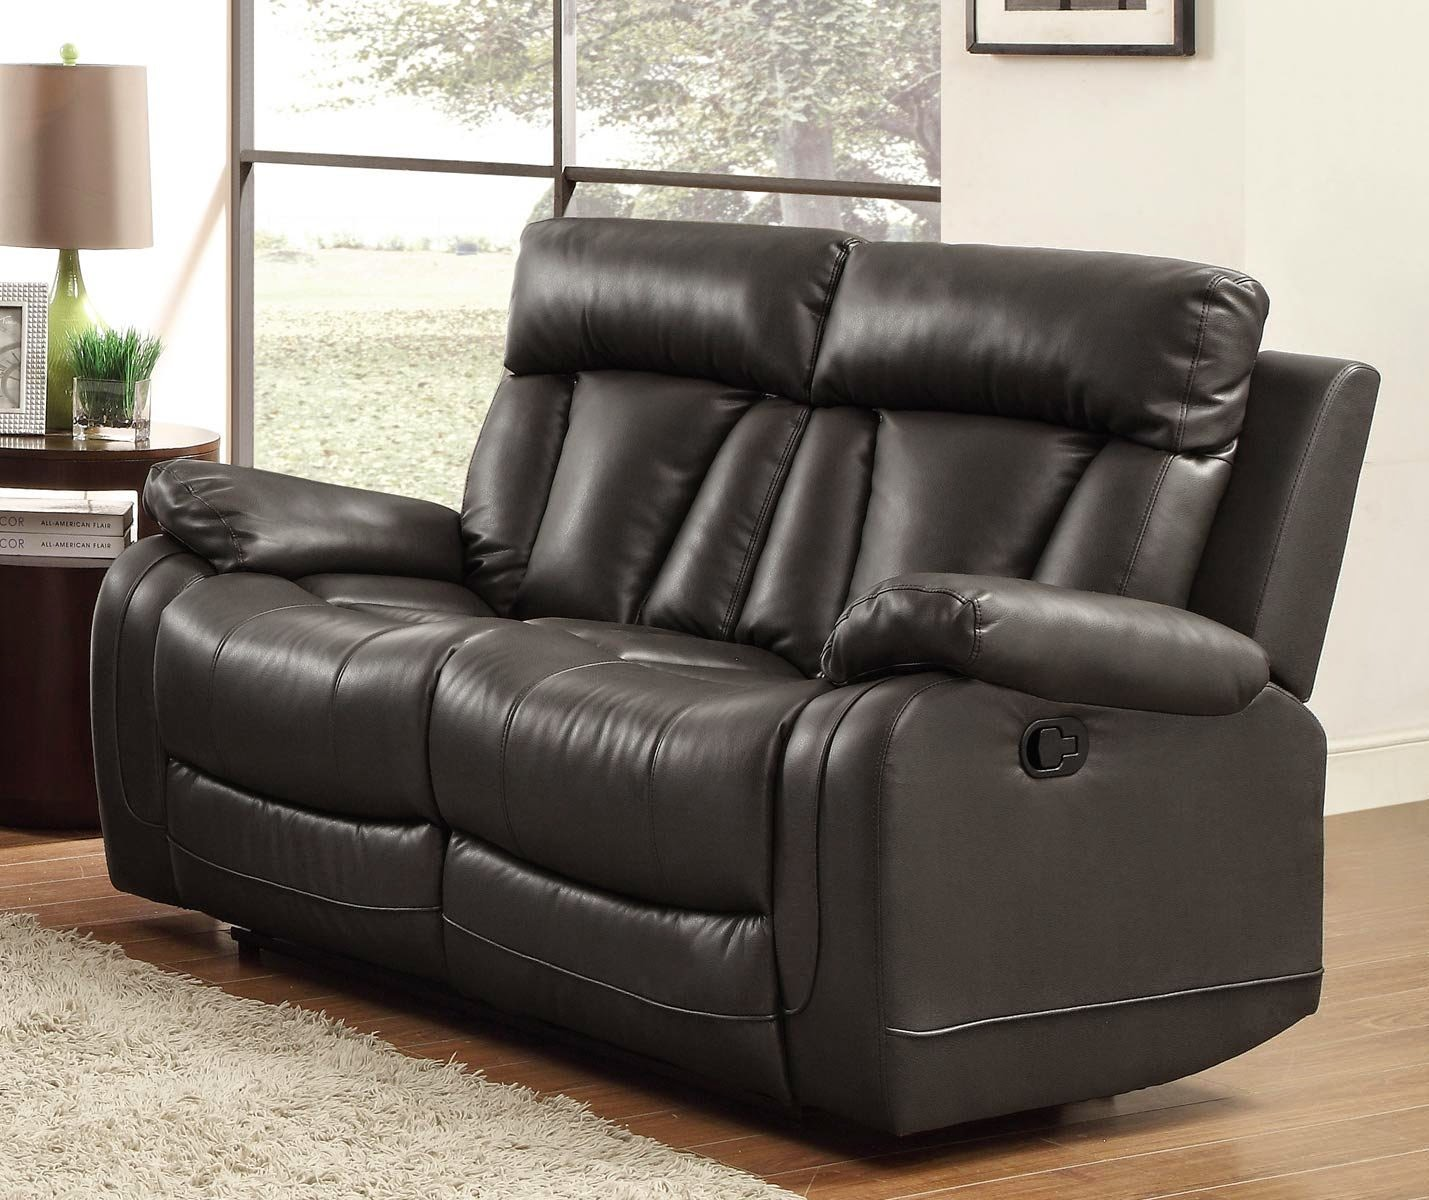 Cheap recliner sofas for sale black leather reclining sofa and loveseat Leather loveseat recliners